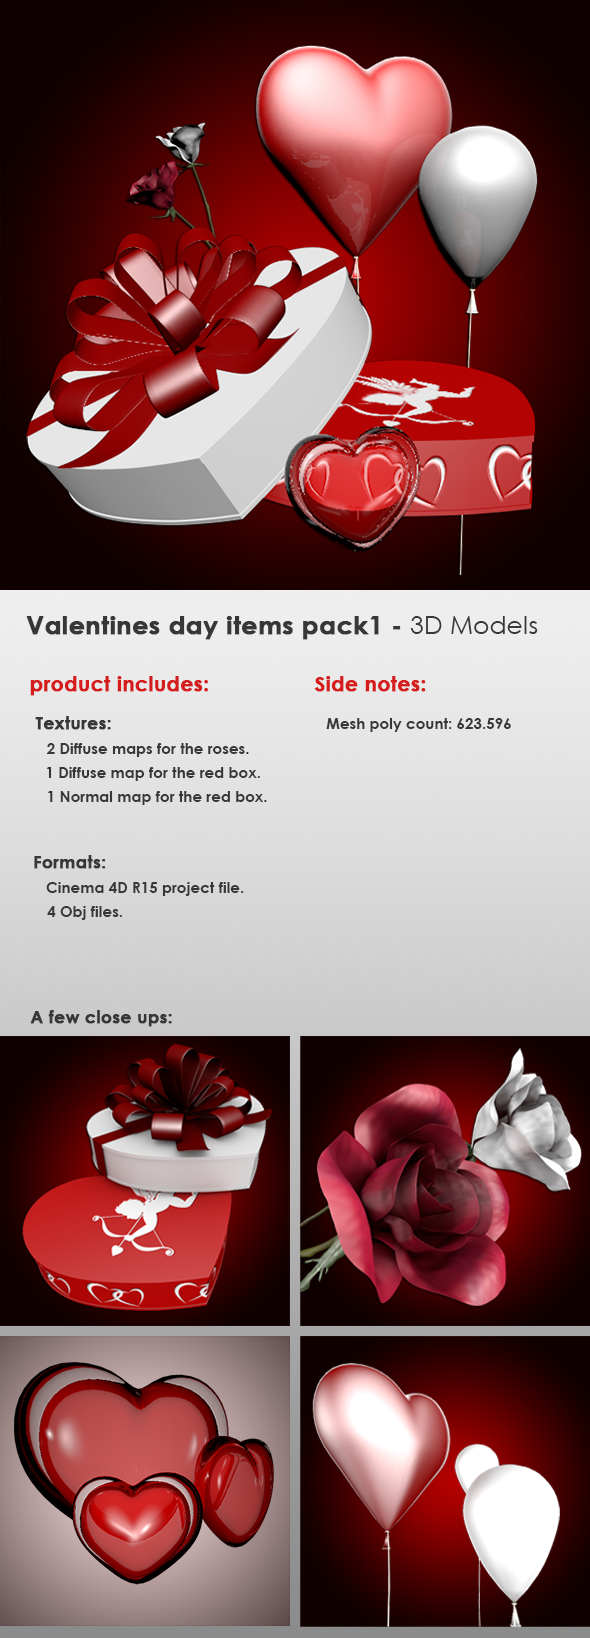 Valentines Day Items Pack 1 - 3DOcean Item for Sale